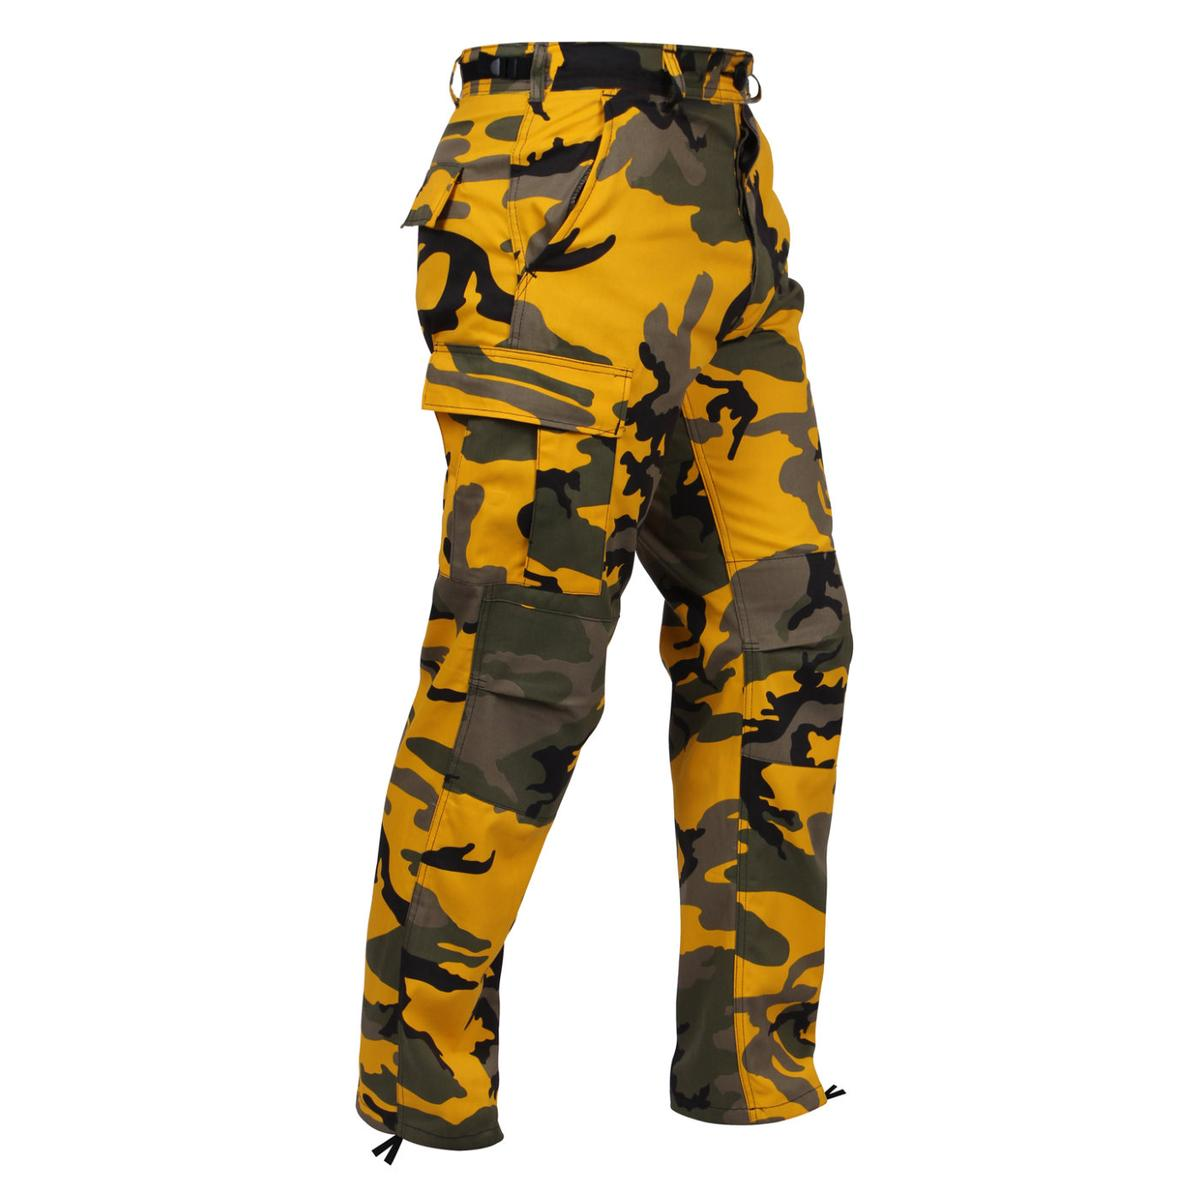 Stinger Yellow Camo BDU Pants, Military Fatigues by Rothco